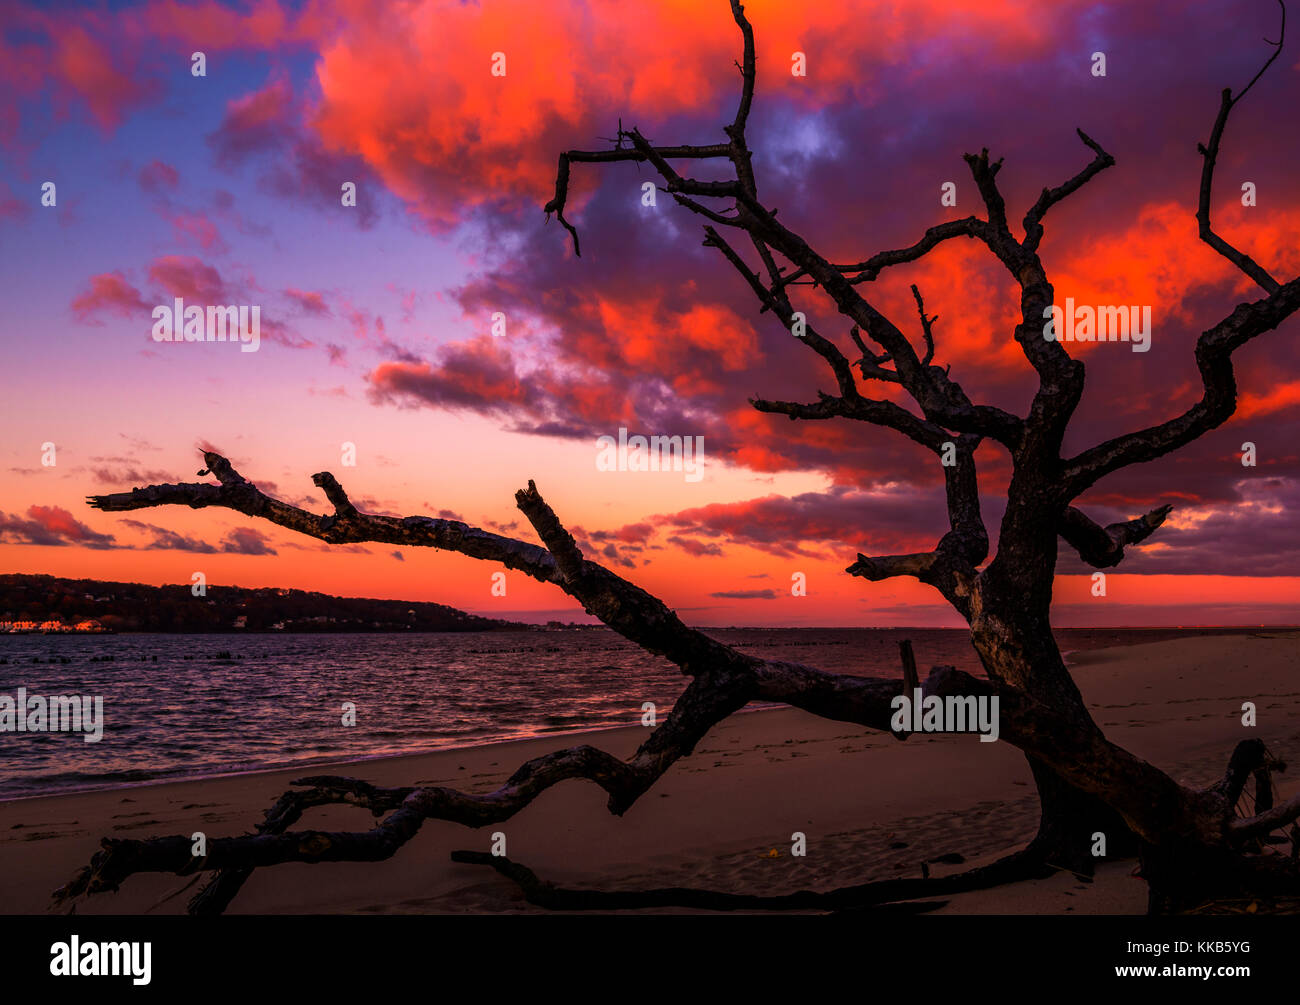 Mystical sunrise on the beach. The sunrise colors the clouds in brilliant vivid colors at Sandy Hook Bay, New Jersey - Stock Image